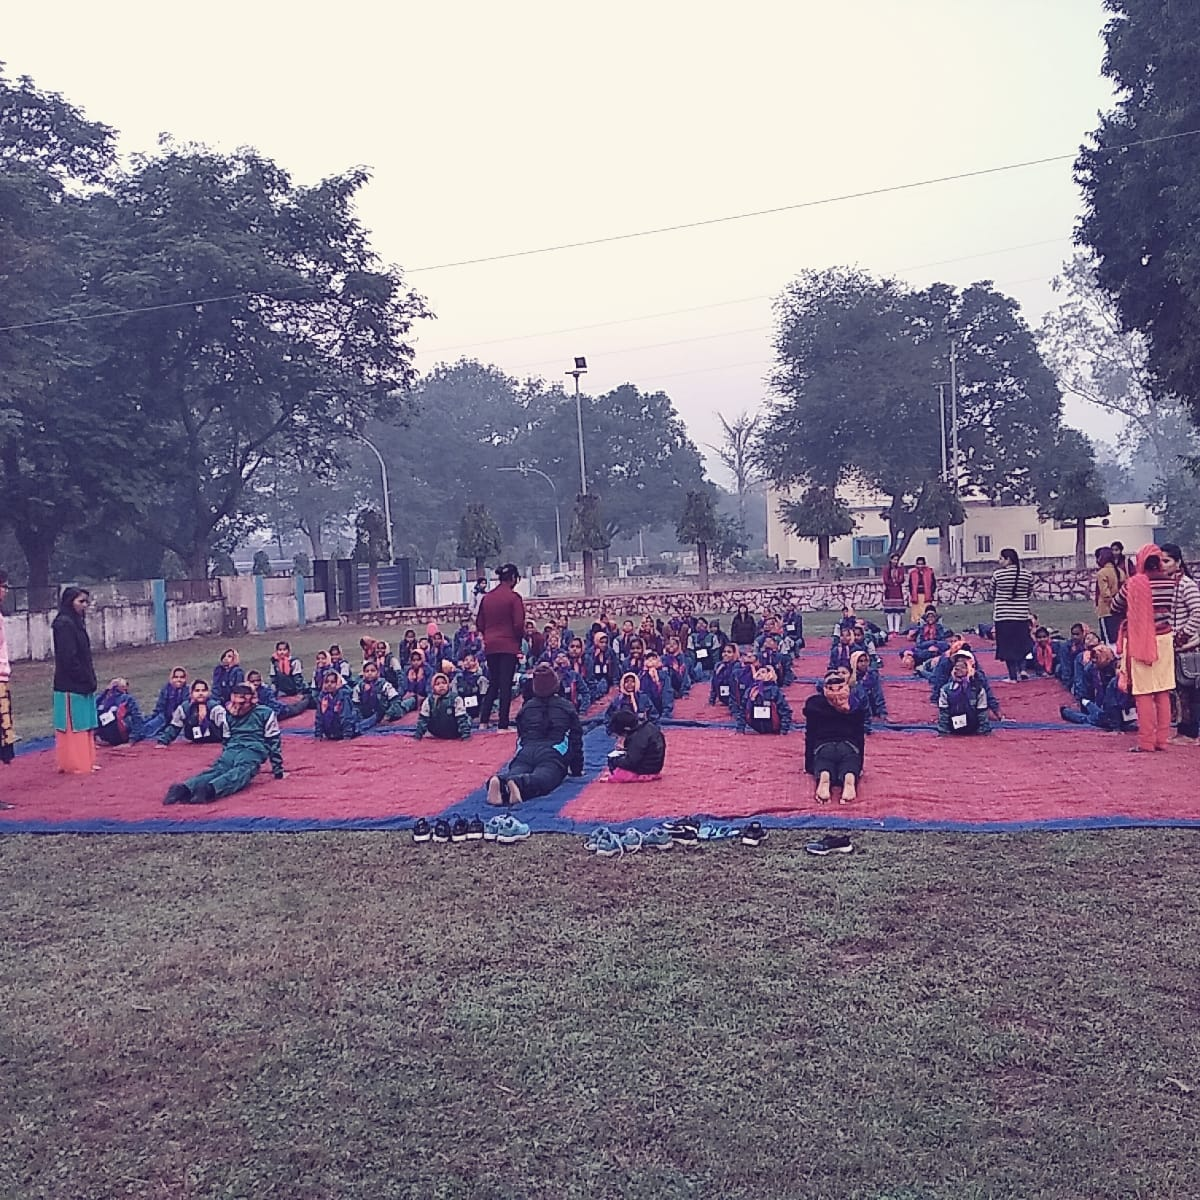 Celebration of International Yoga Day at a school in Patna